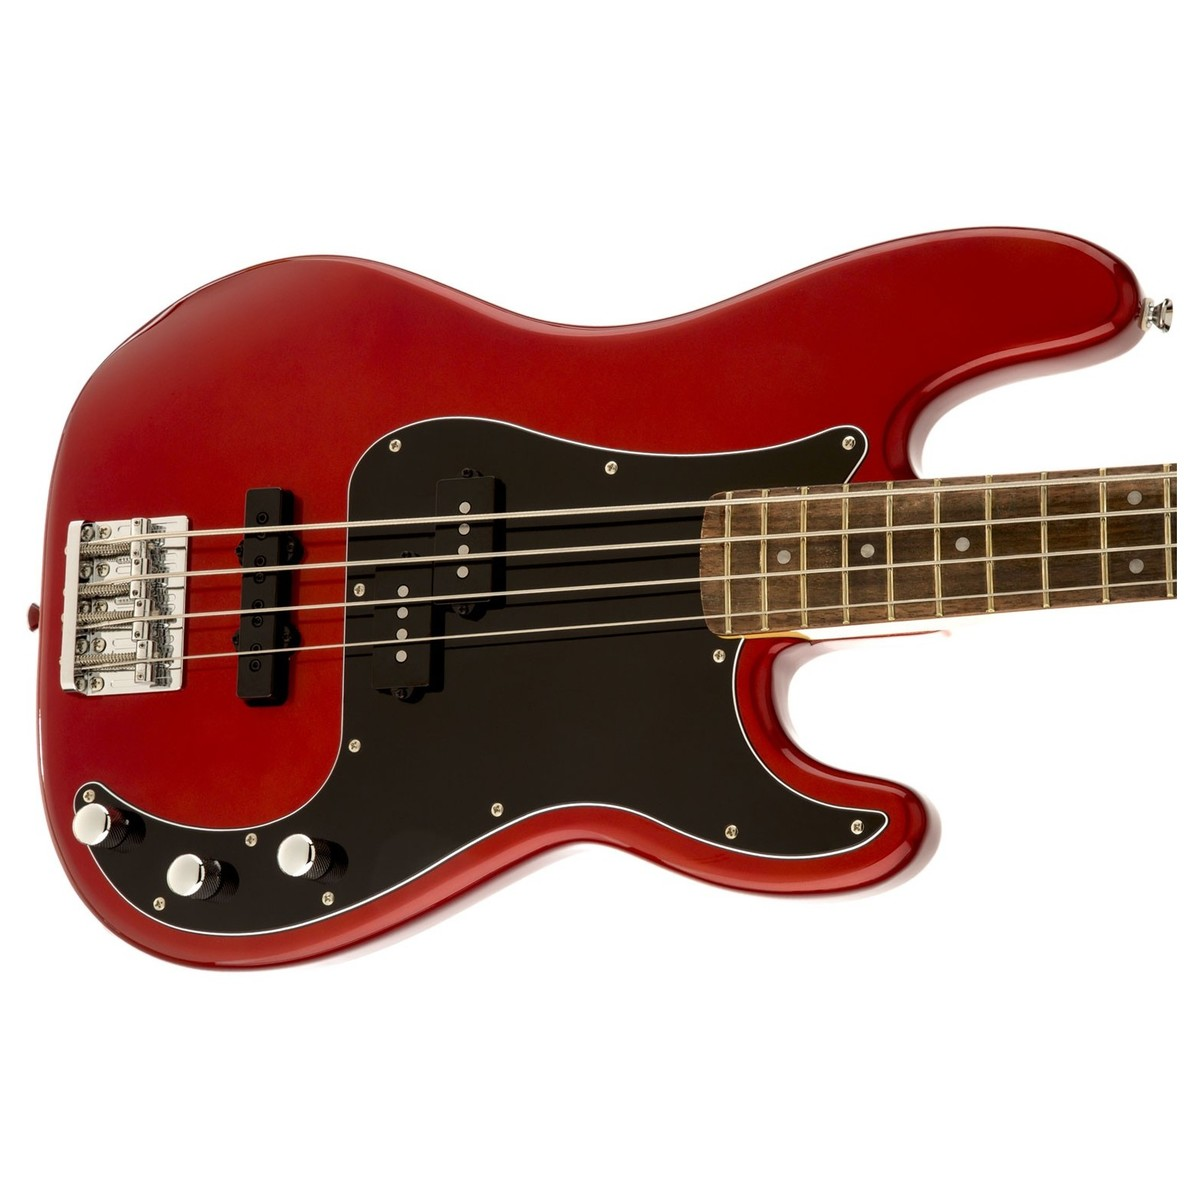 squier vintage modified precision bass pj candy apple red at gear4music. Black Bedroom Furniture Sets. Home Design Ideas